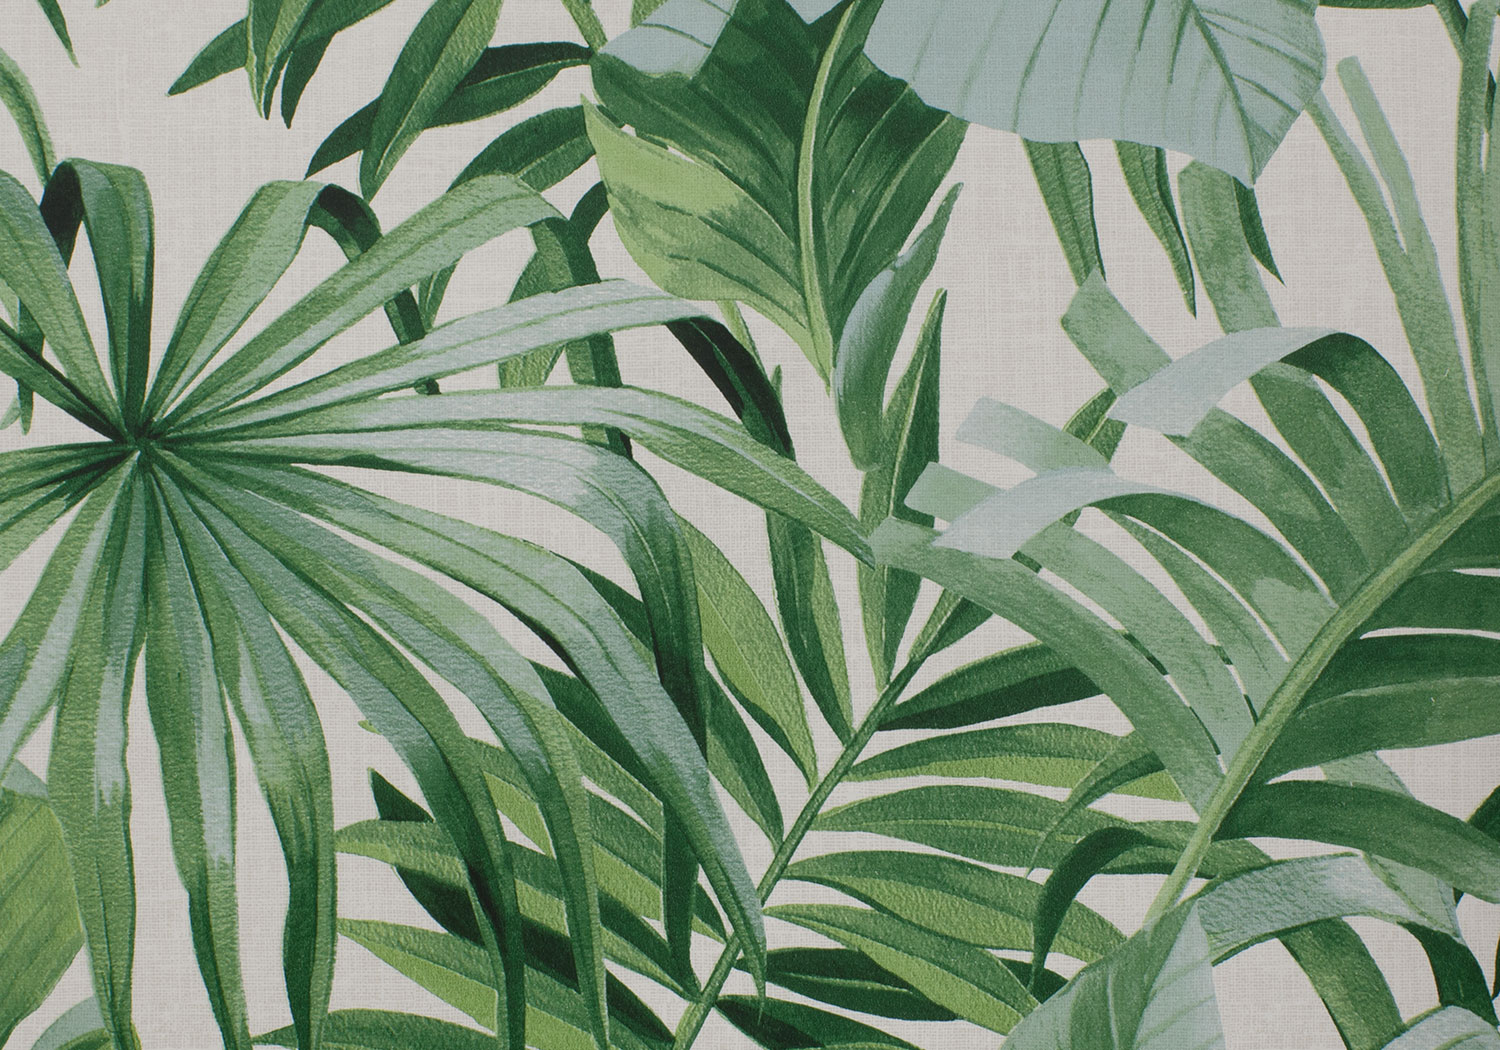 Tropical Plant Aesthetic